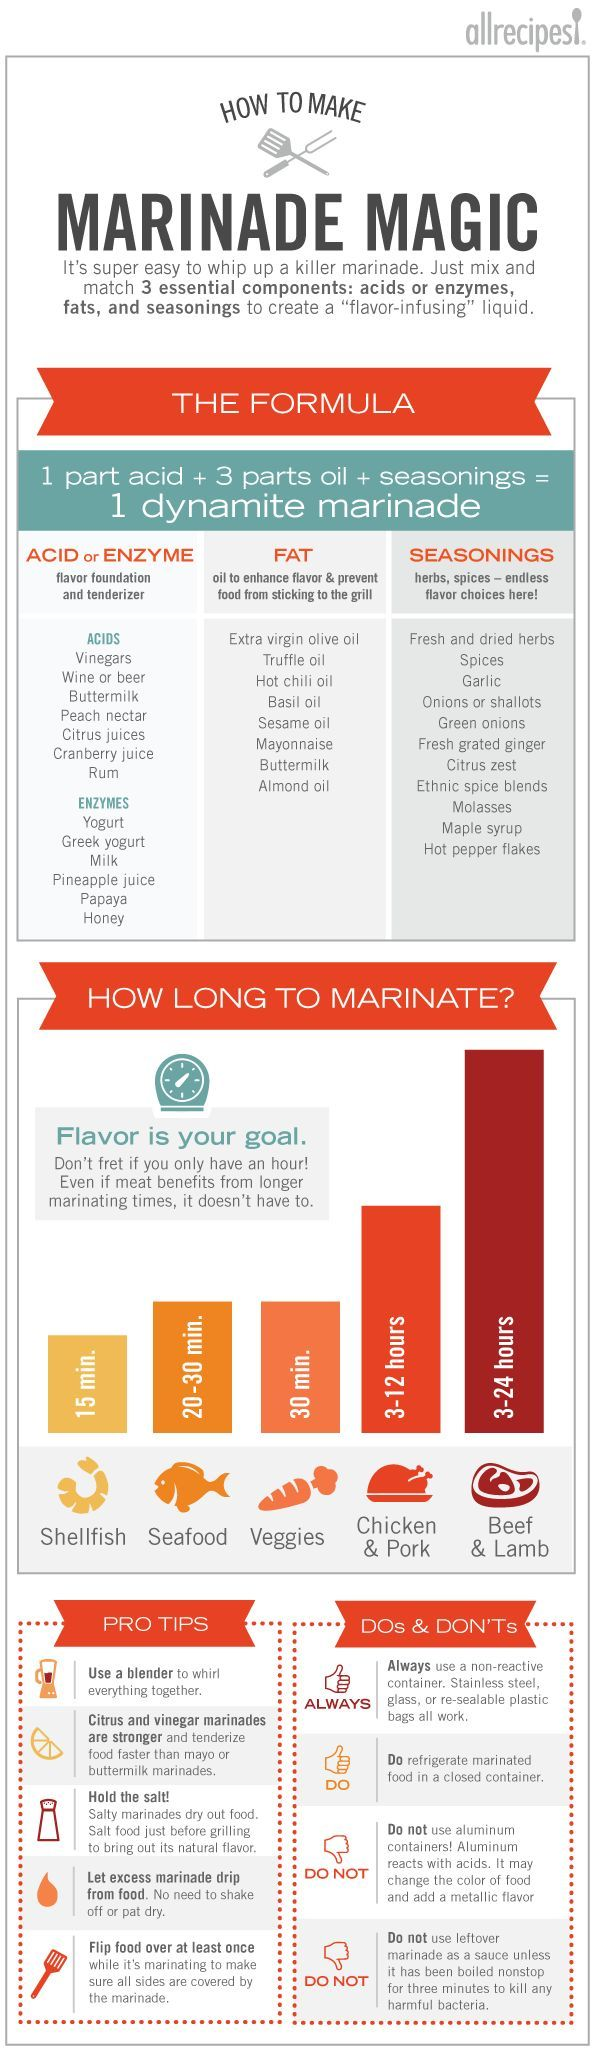 """Marinade Magic: Want to add a splash of """"Wow!"""" to your favorite foods? (Who doesn't, right?) Marinades make the magic that turns tried-and-true foods into something memorable."""